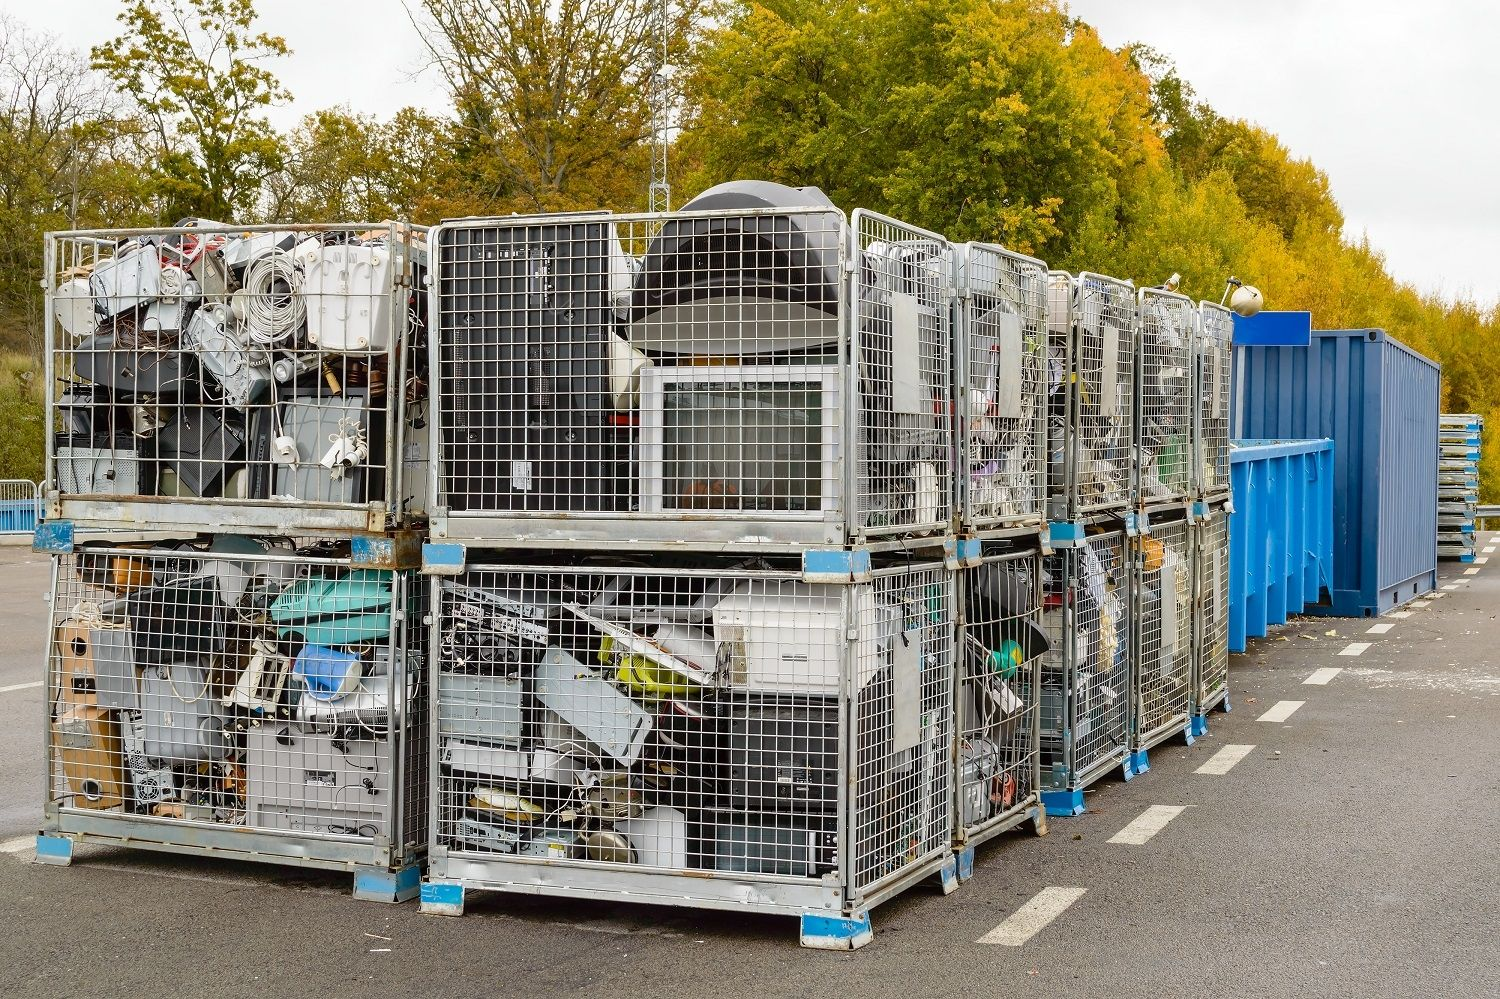 Electronics waste, including computers, are discarded in recycling bins